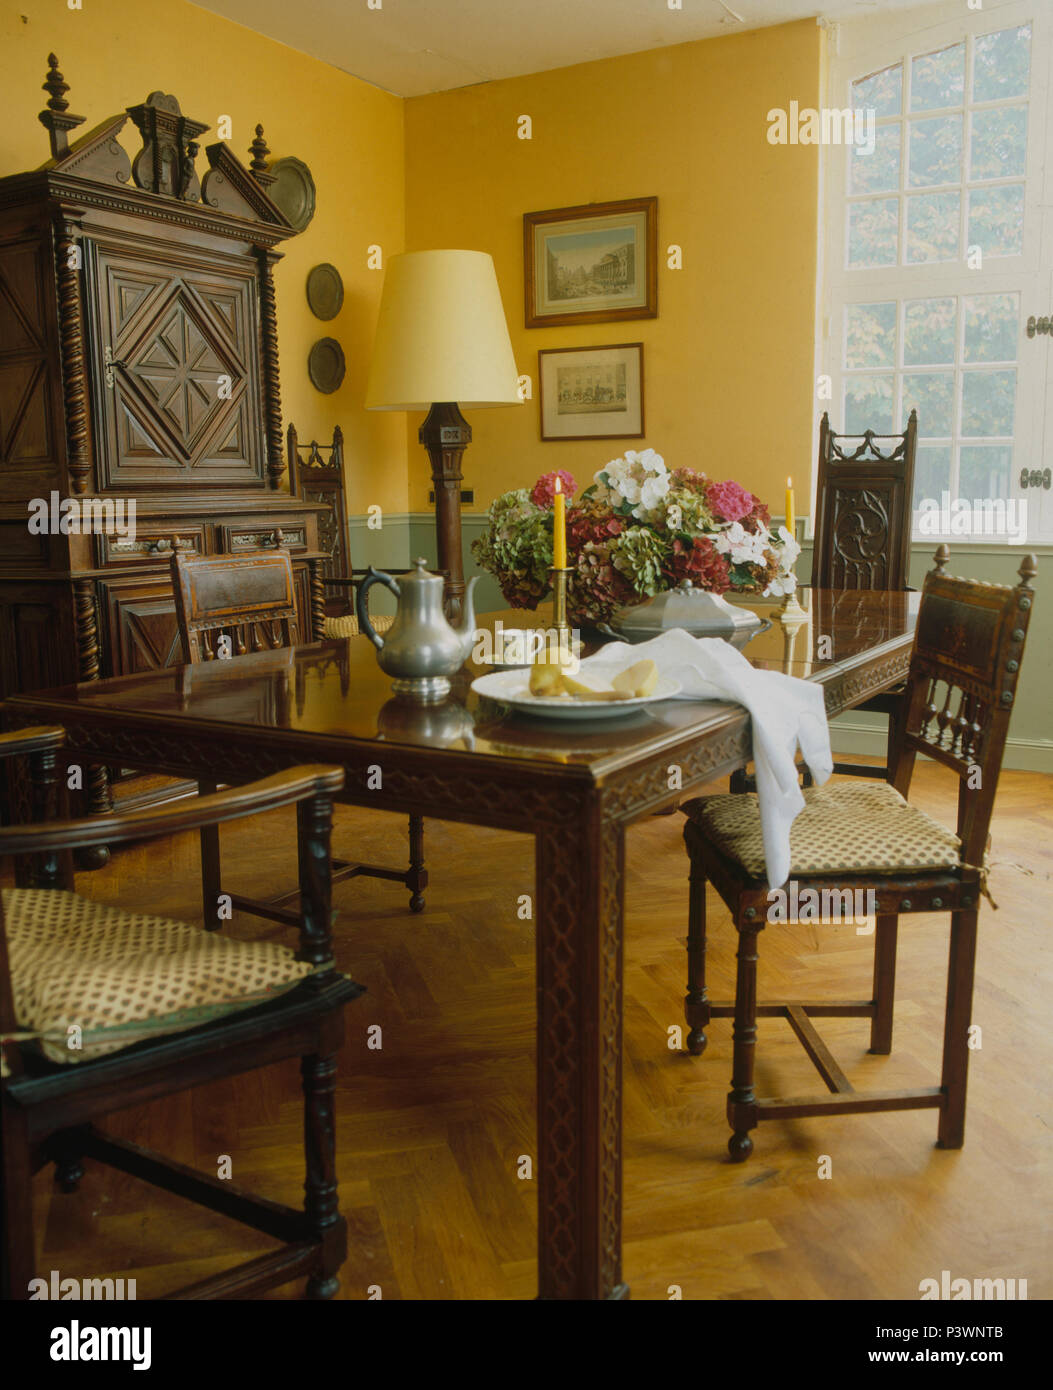 Dark Wood Furniture Parquet Flooring And Dark Wood Furniture In Yellow French Country